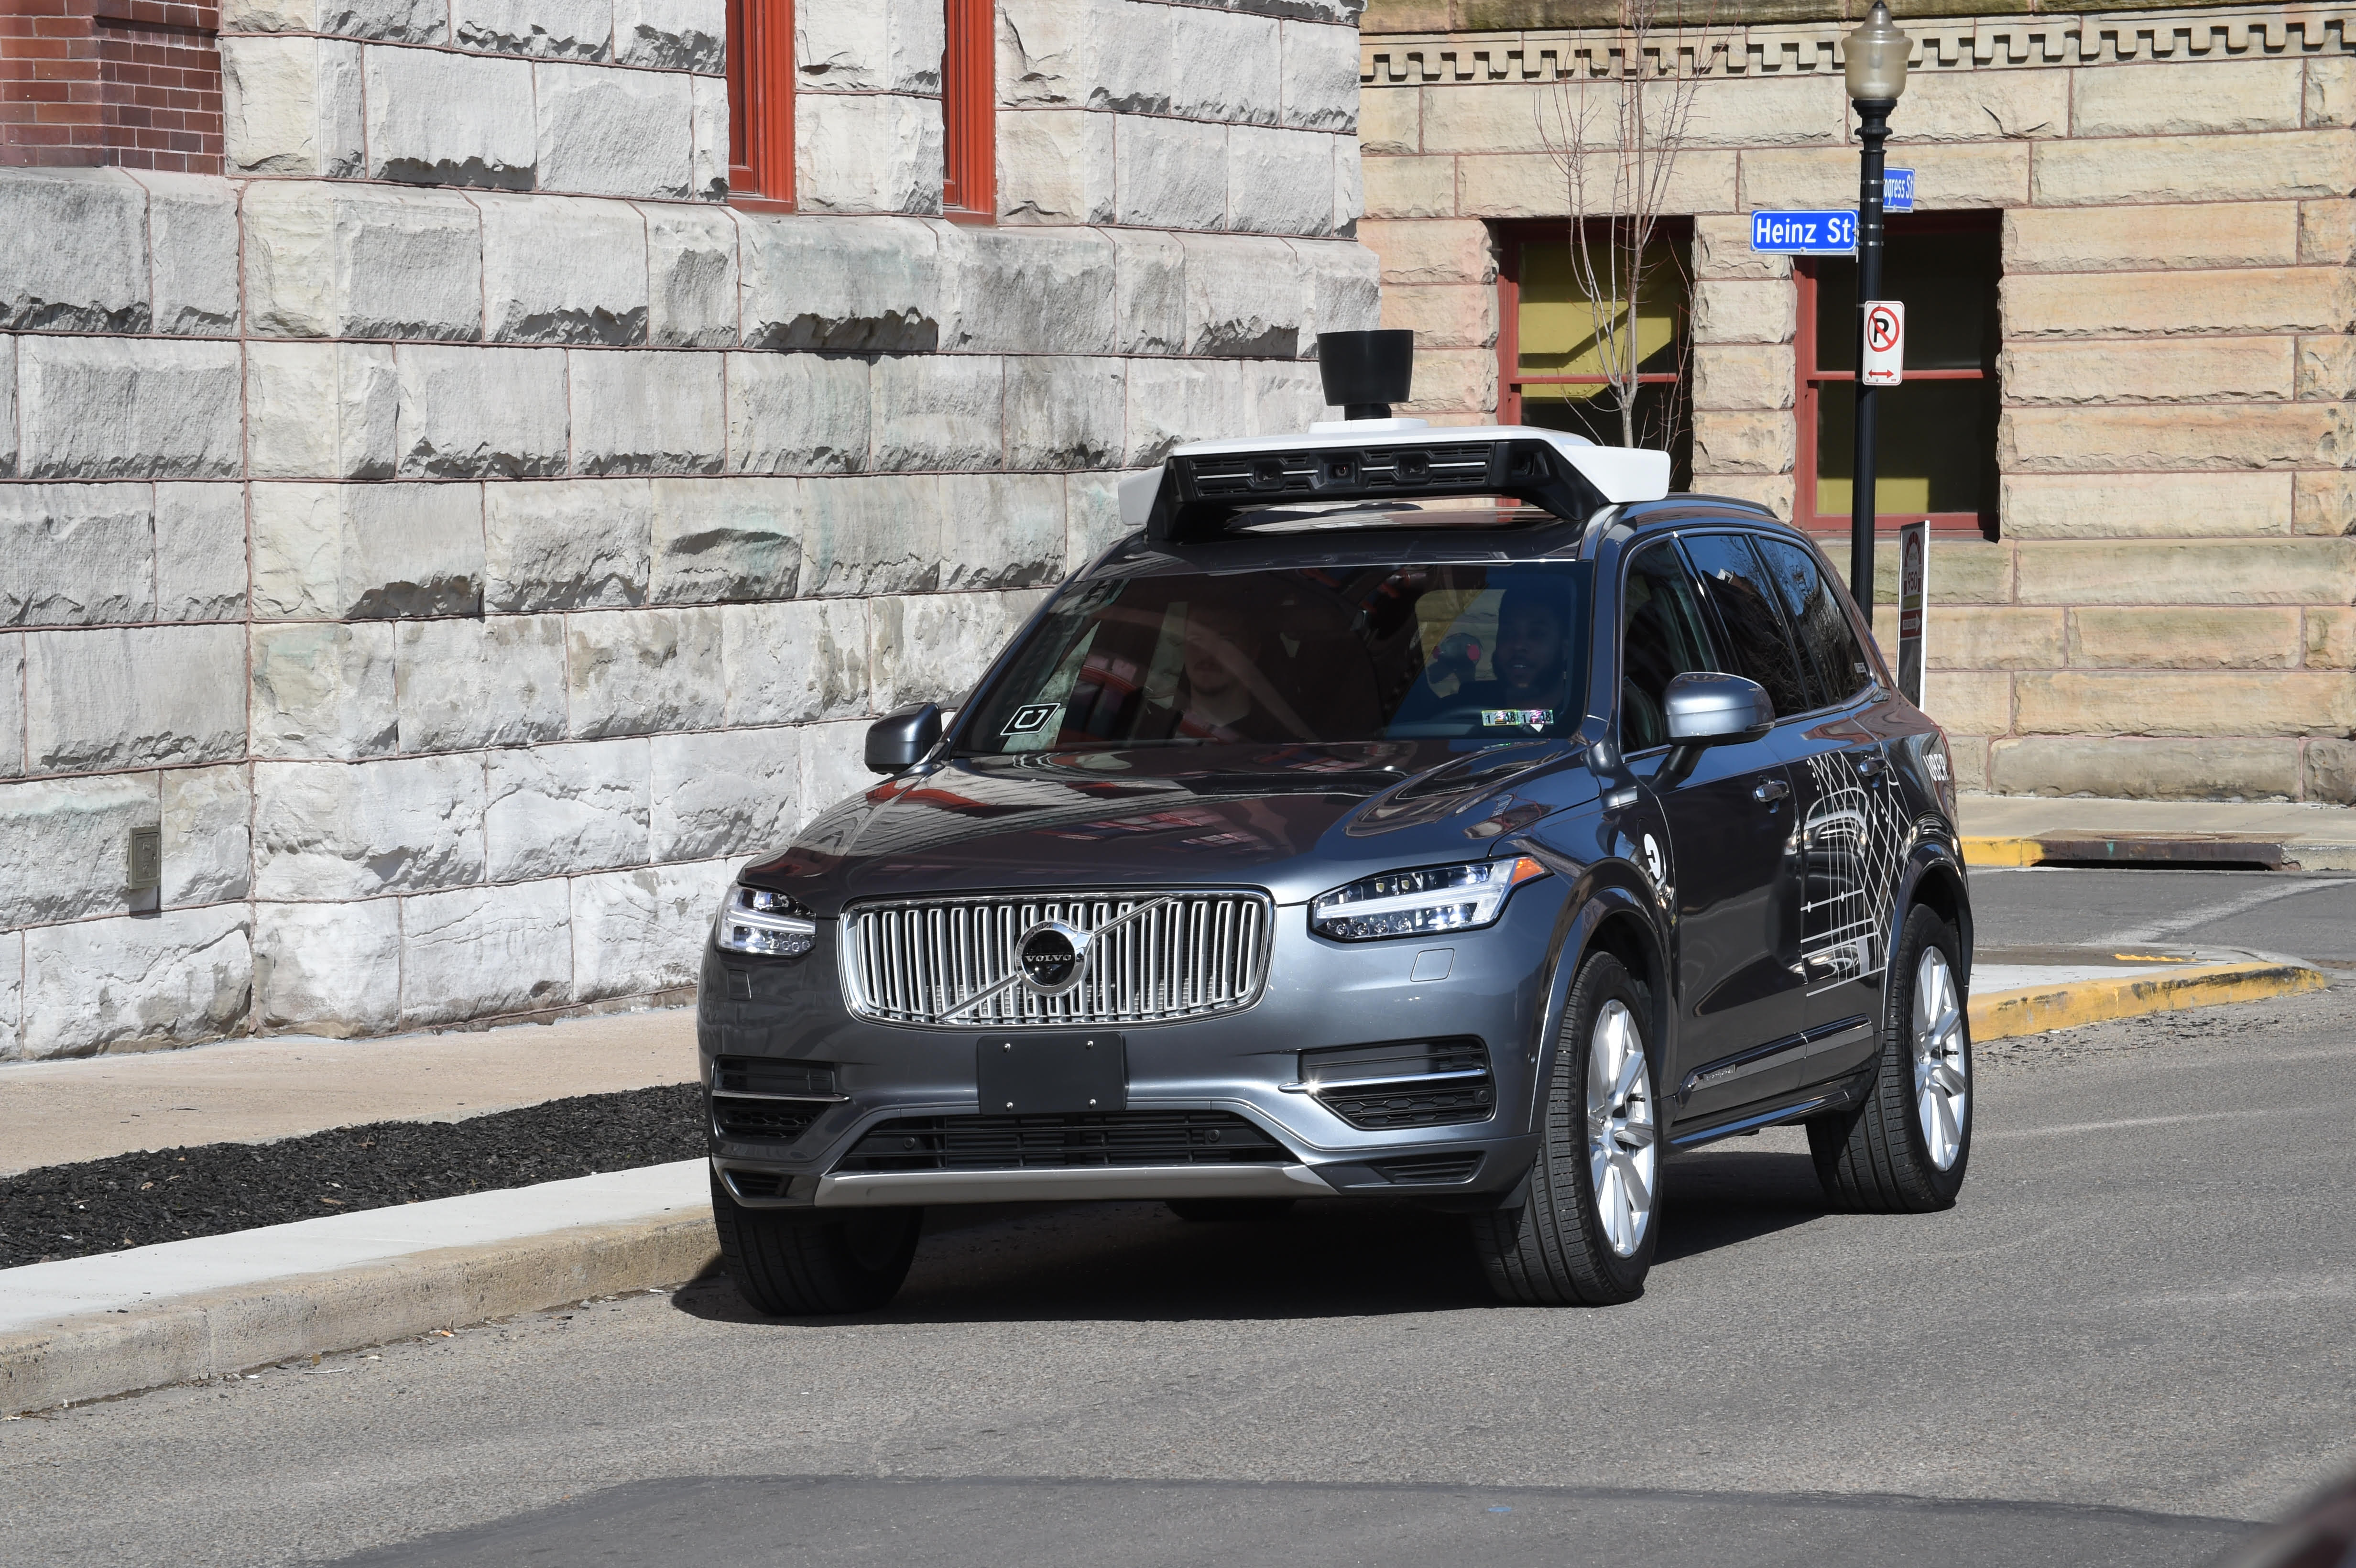 Uber Black Driver >> Uber self-driving car crashes into another car in ...